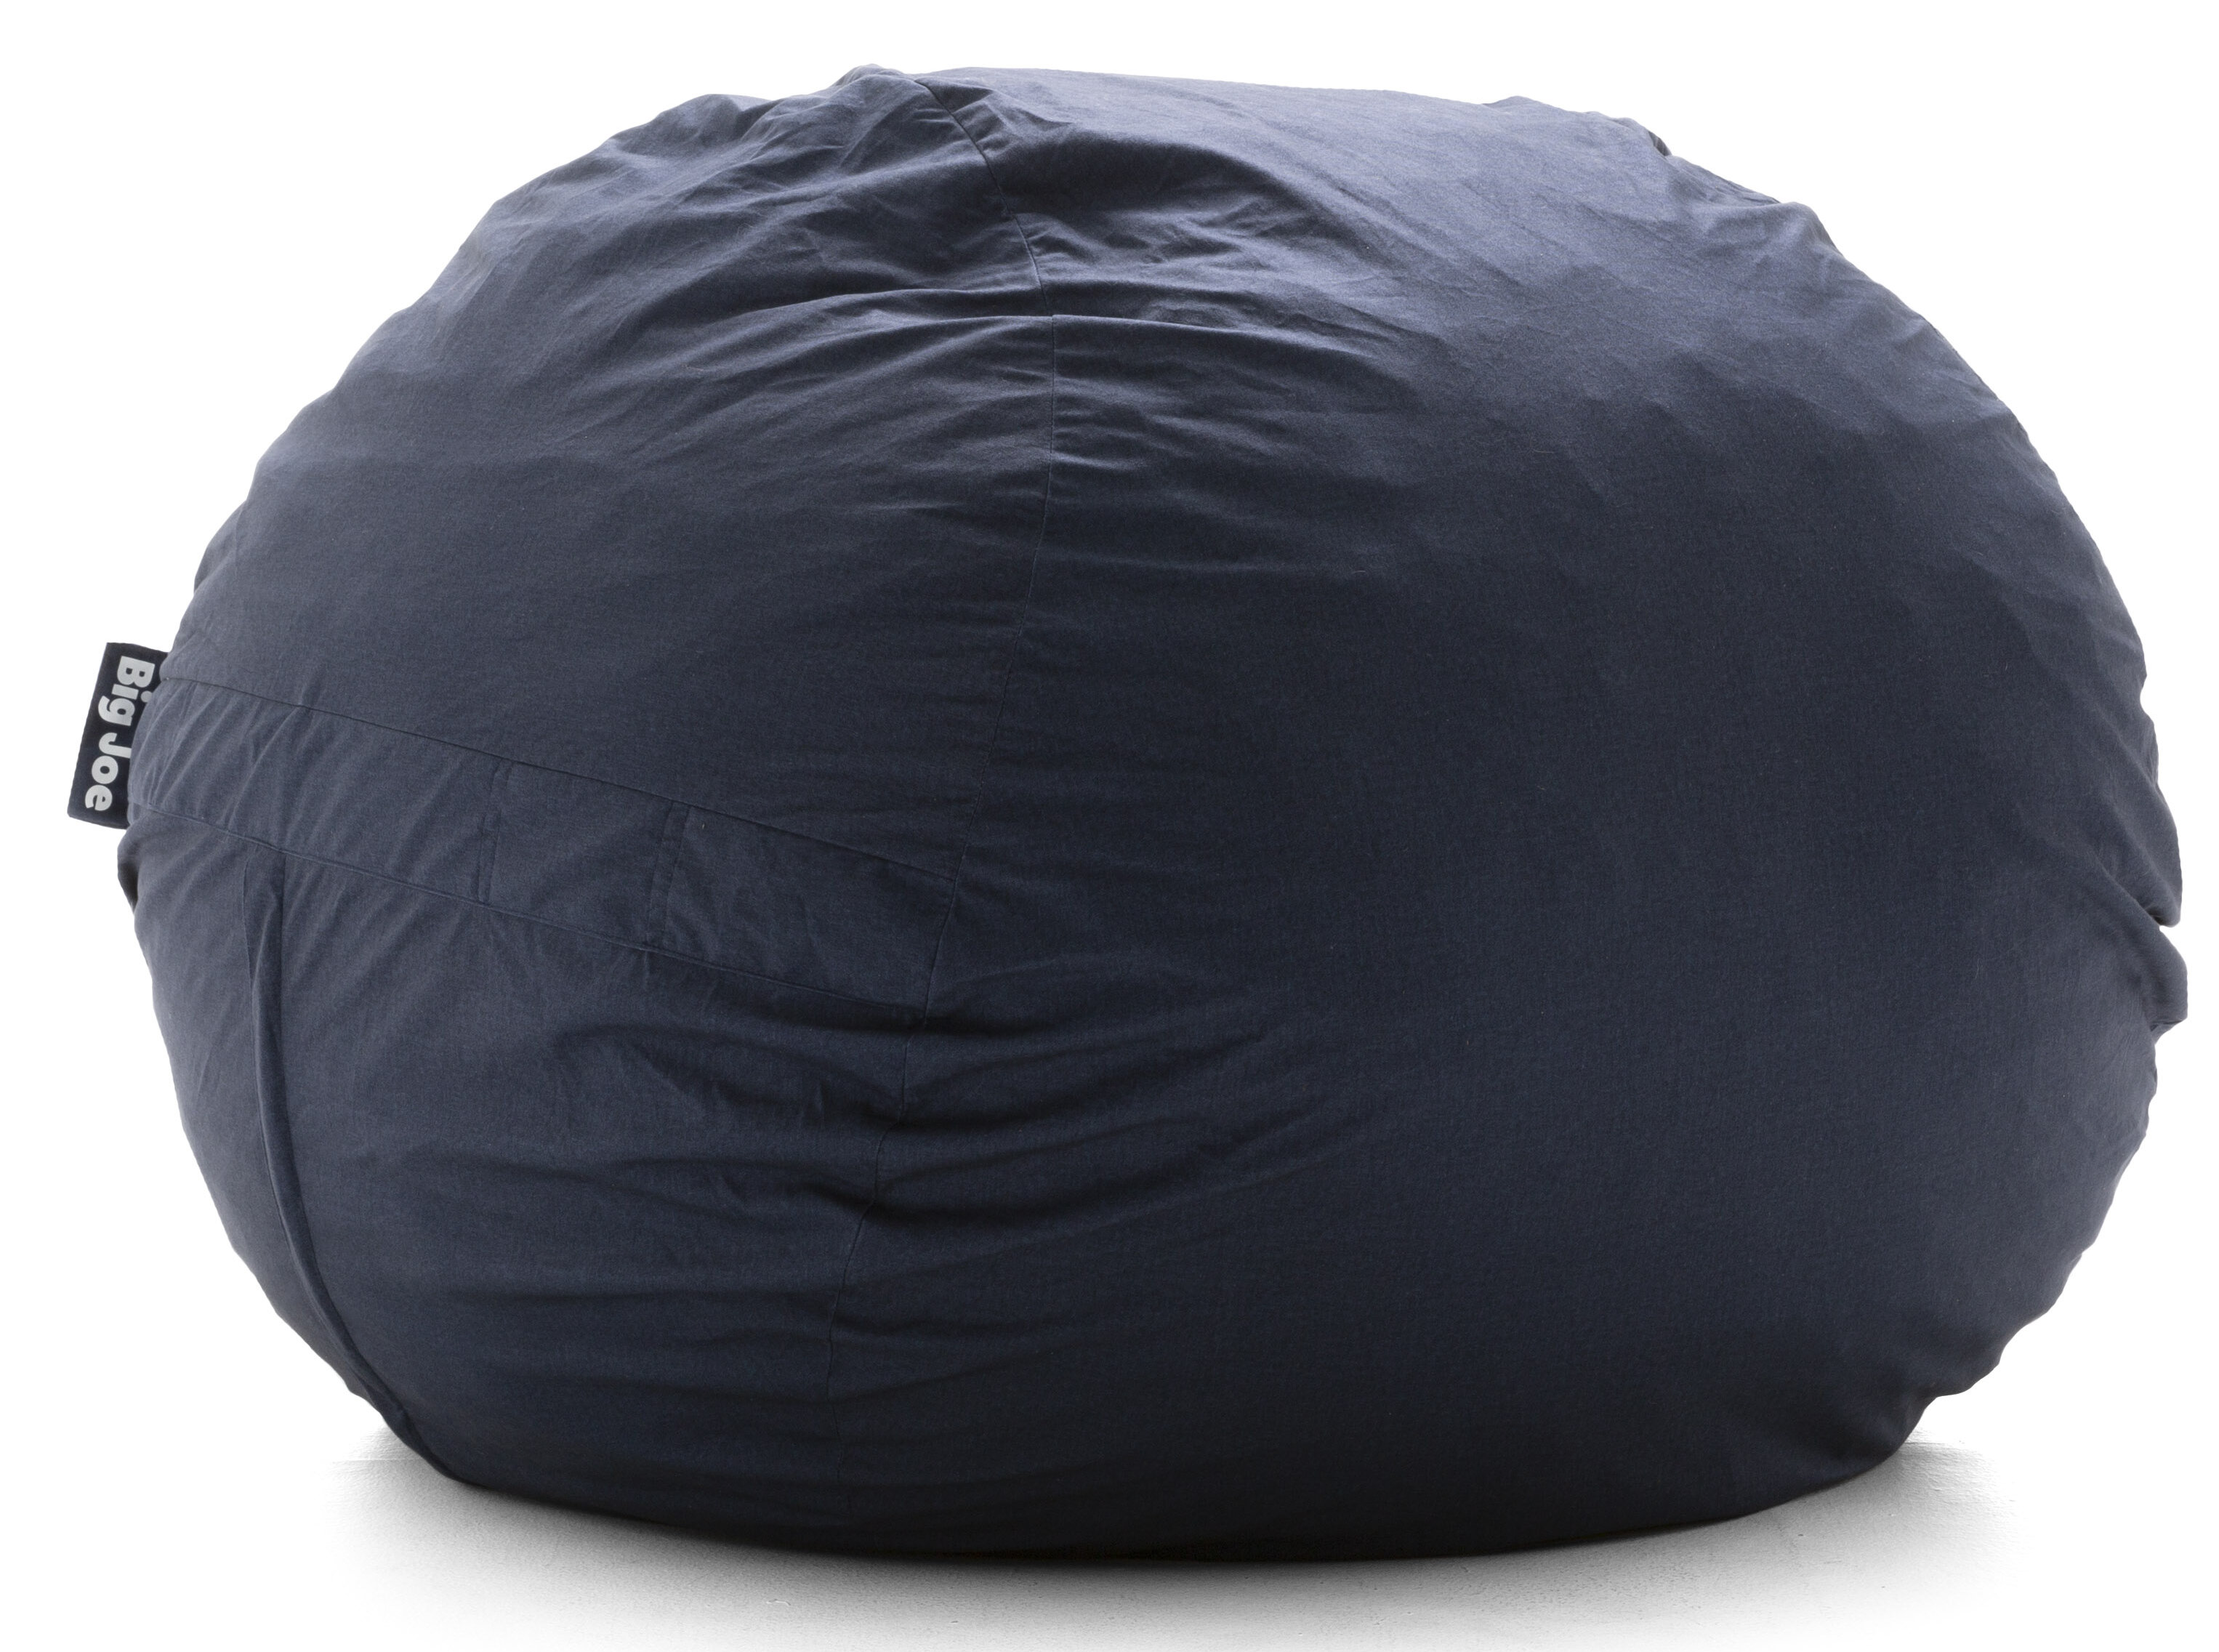 Awesome Big Joe Fuf Bean Bag Chair Caraccident5 Cool Chair Designs And Ideas Caraccident5Info